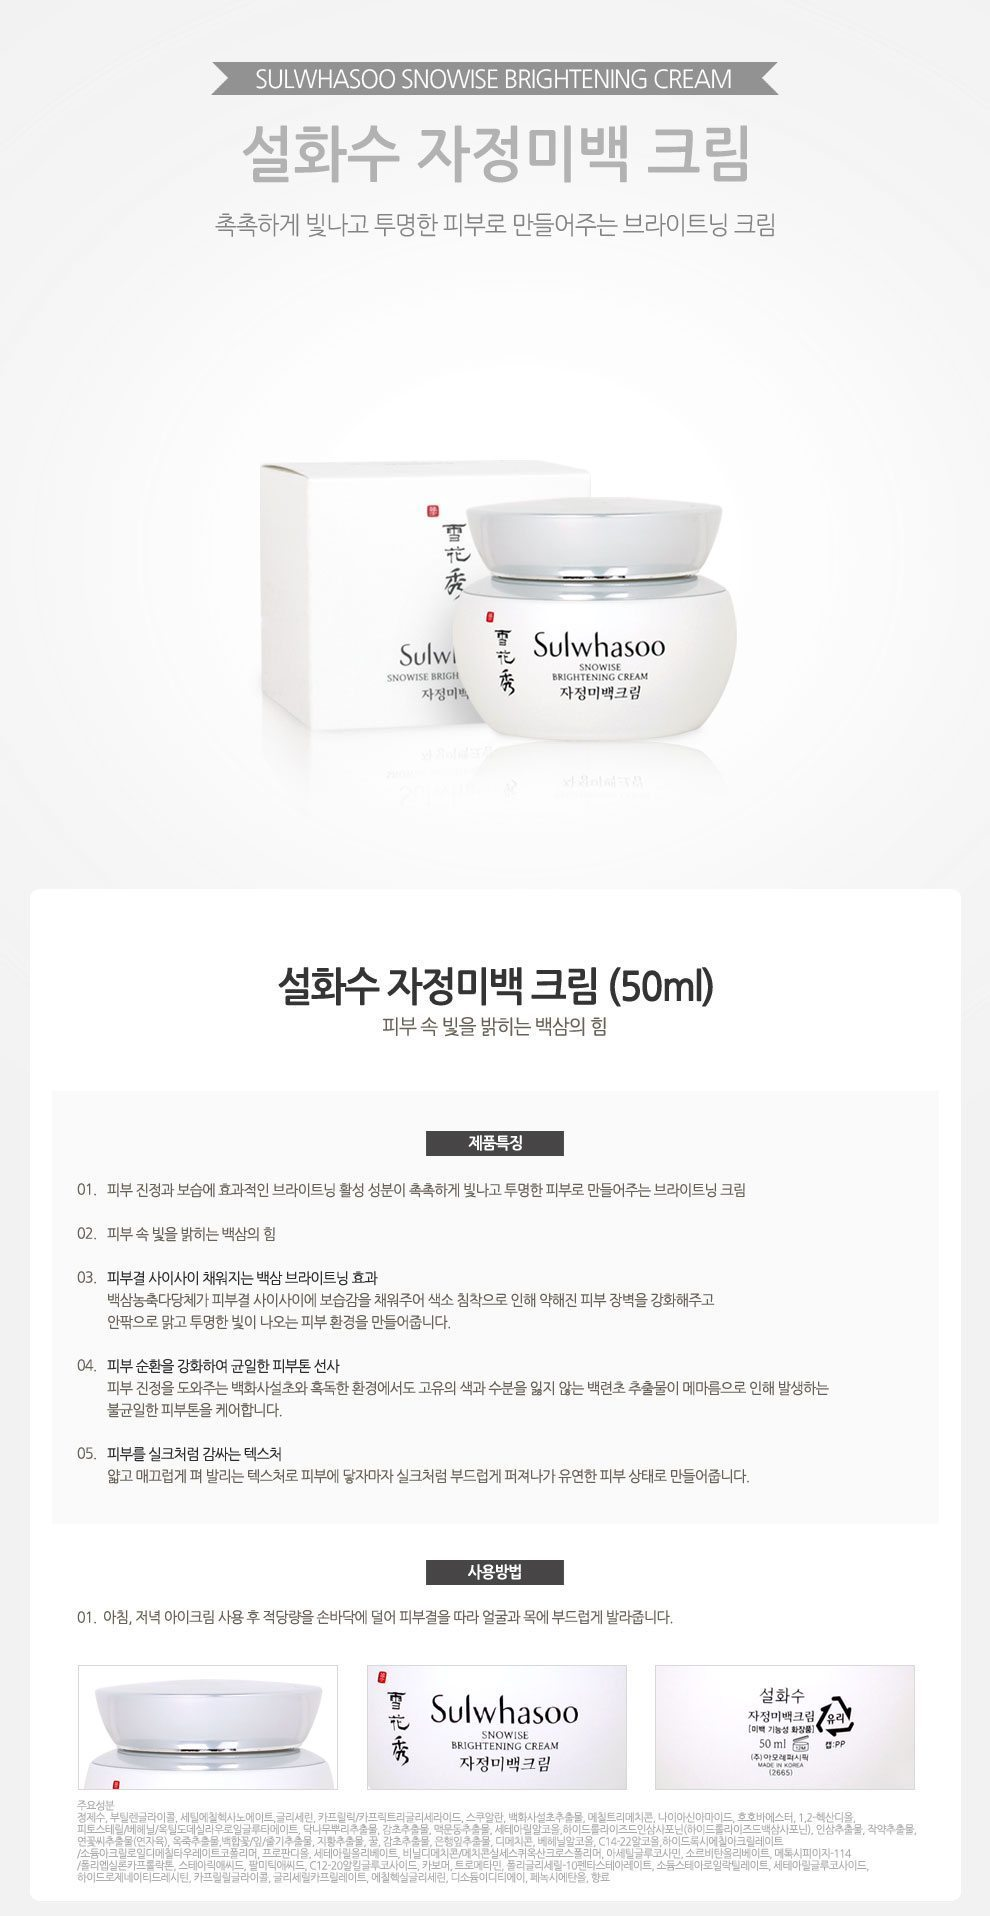 Sulwhasoo Snowise Brightening Cream Price Malaysia Thailand Philippines China1